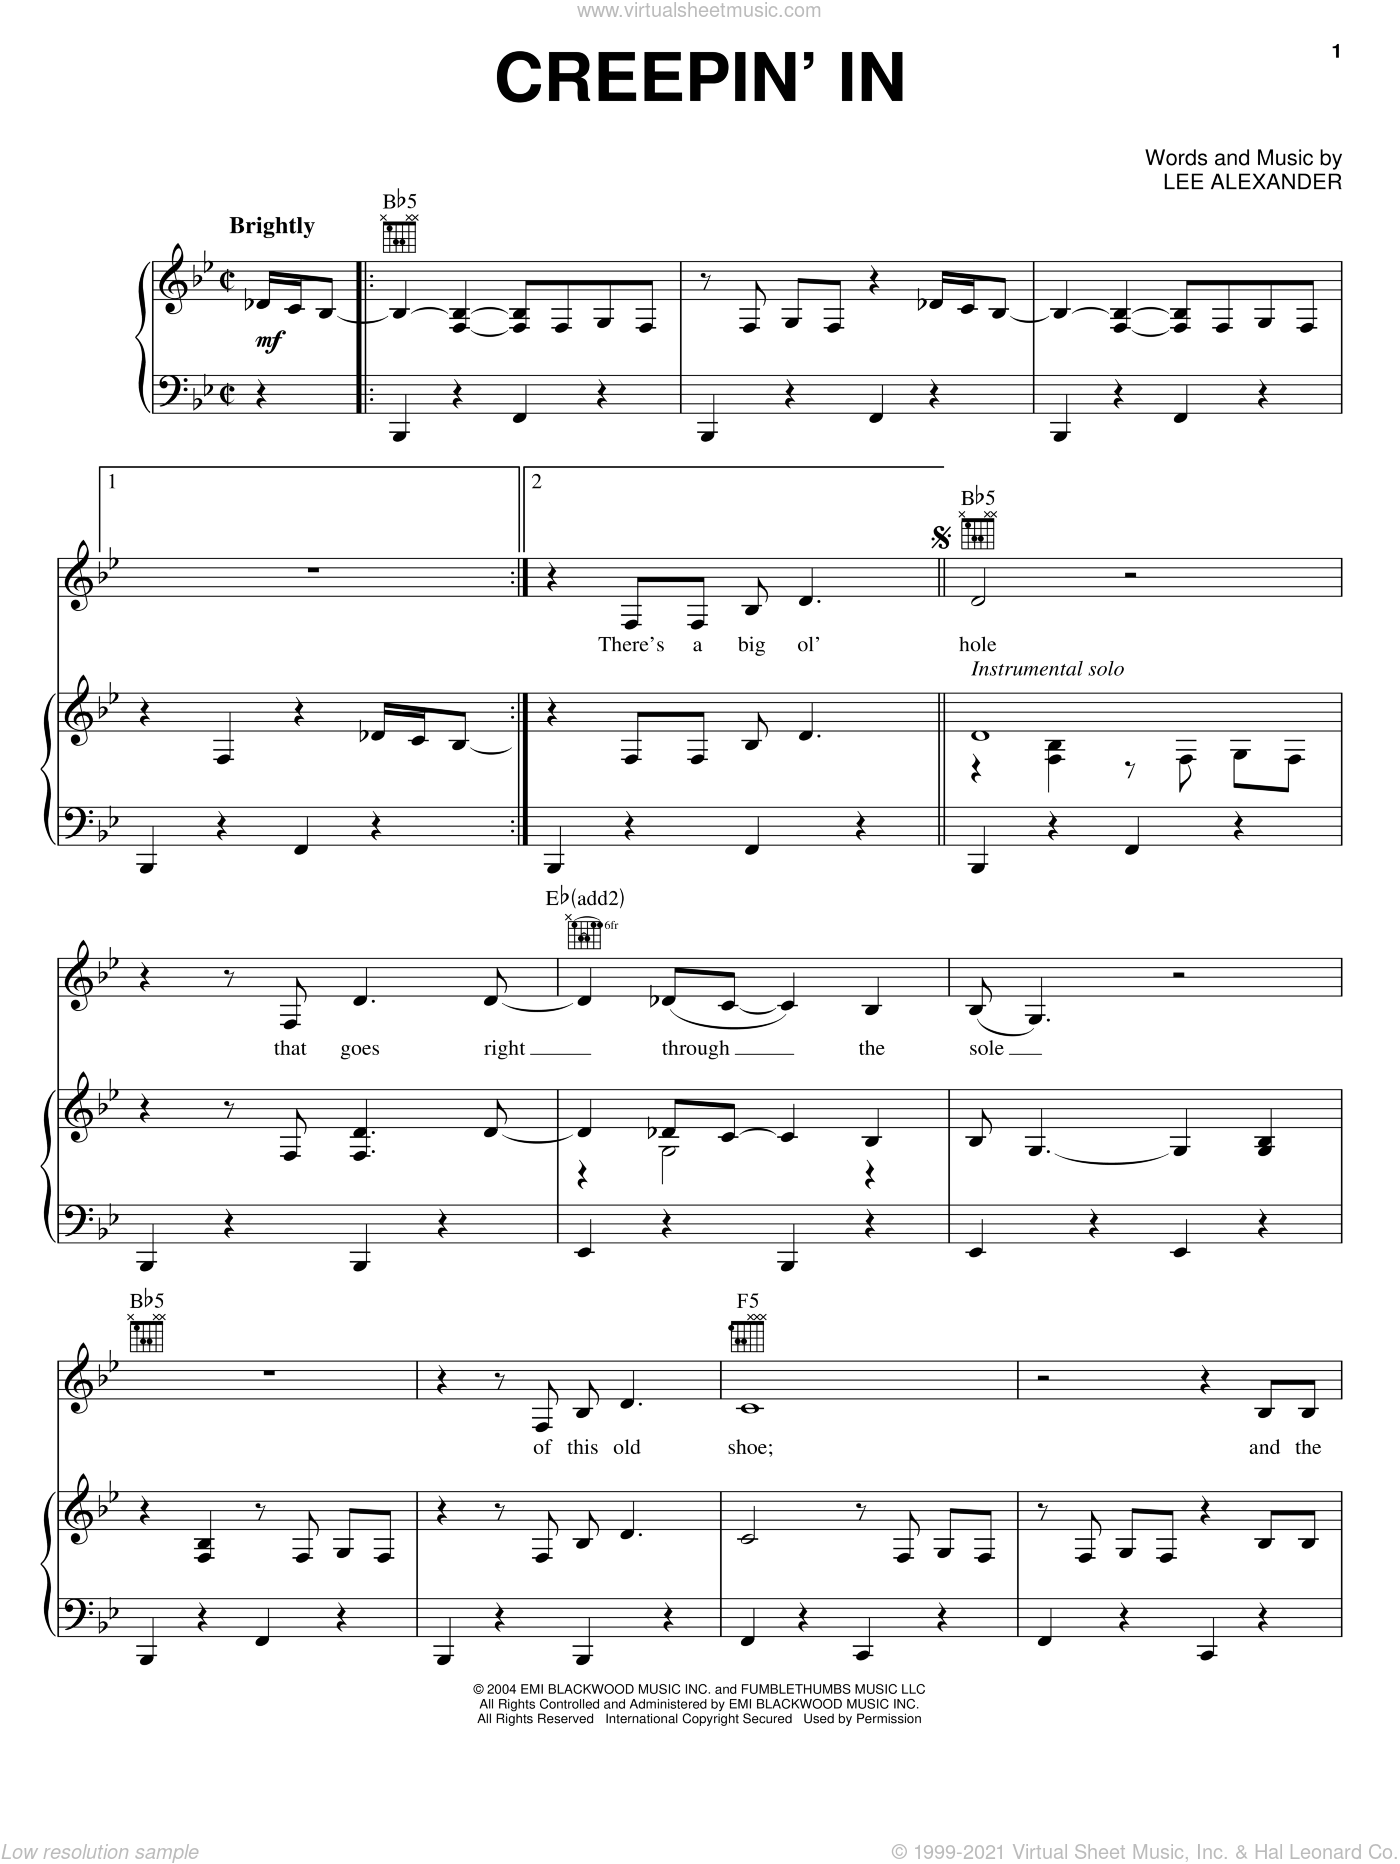 Creepin' In sheet music for voice, piano or guitar by Lee Alexander